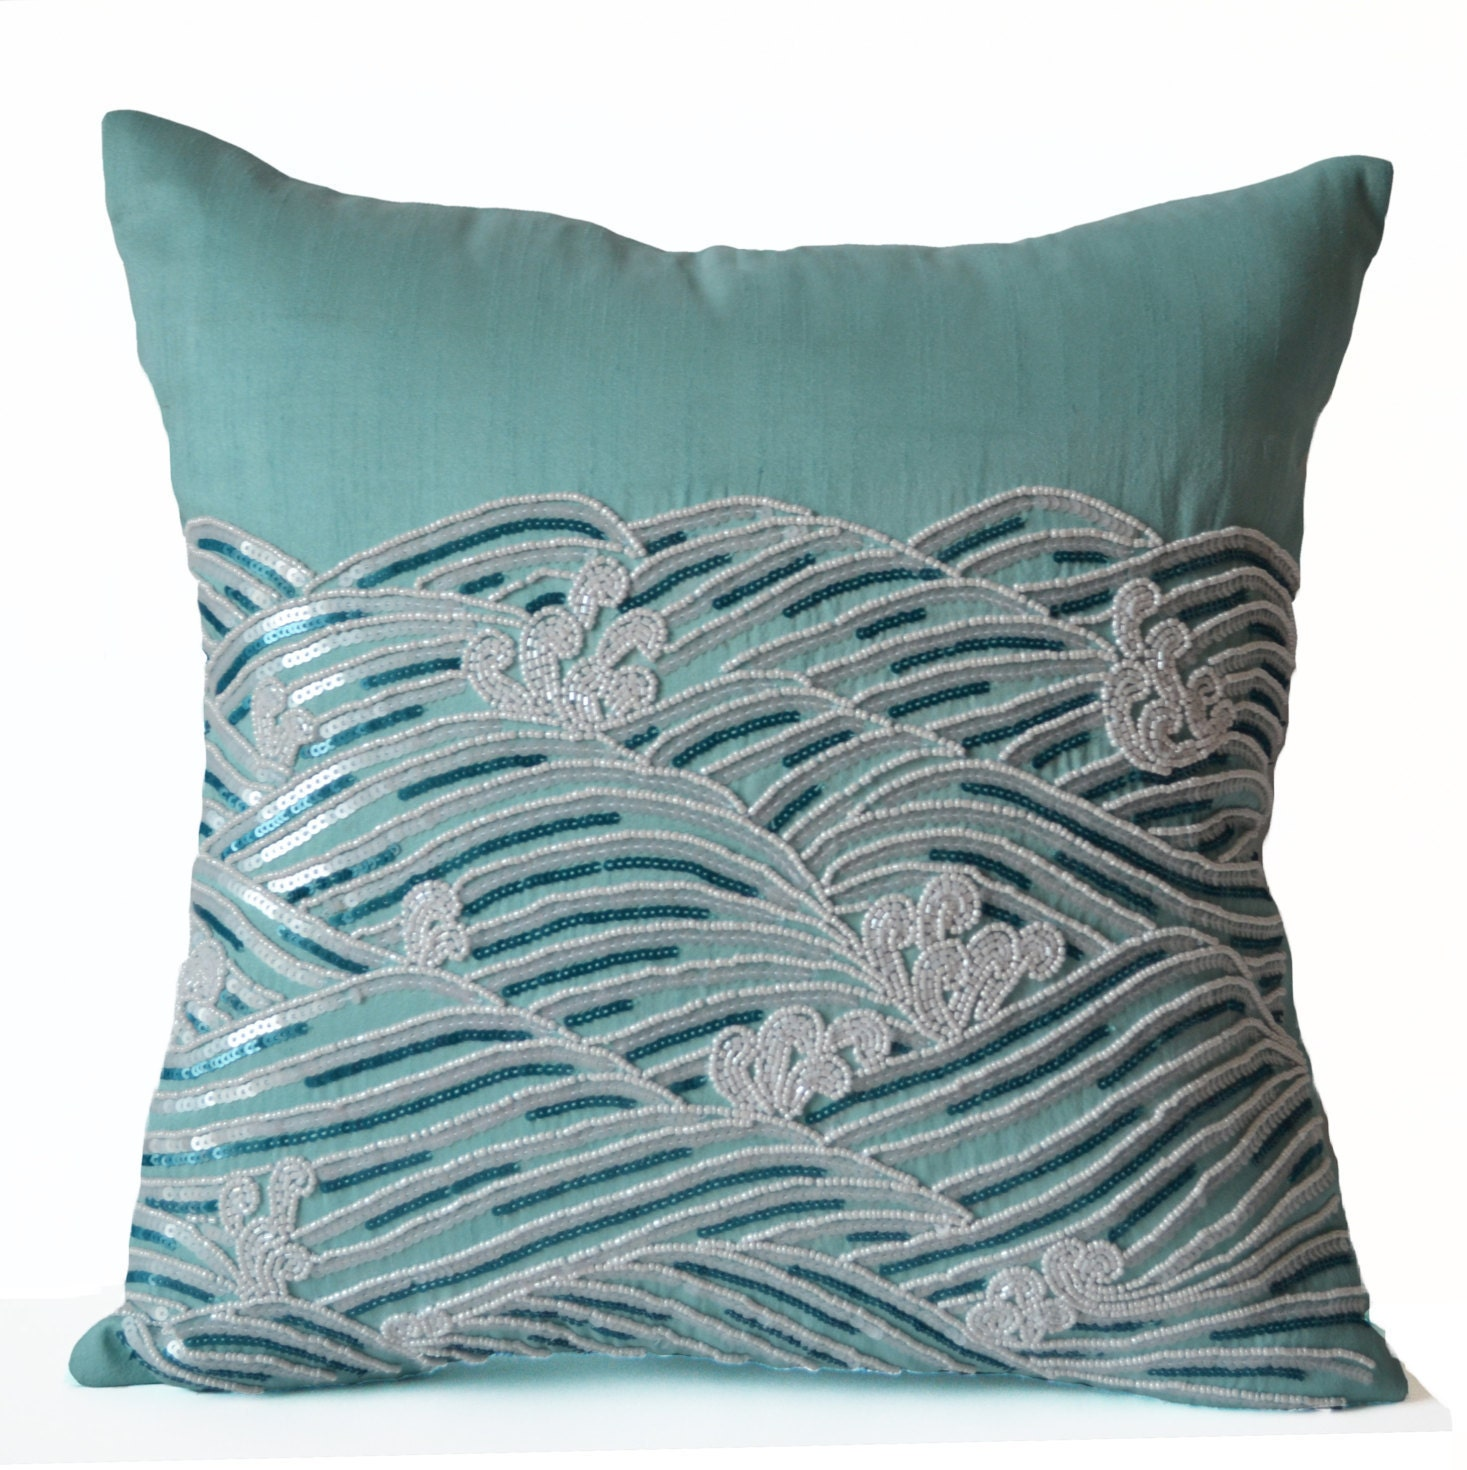 Throw Pillow Covers Teal : Decorative Pillow Cover Teal Throw Pillows Sequin Beads